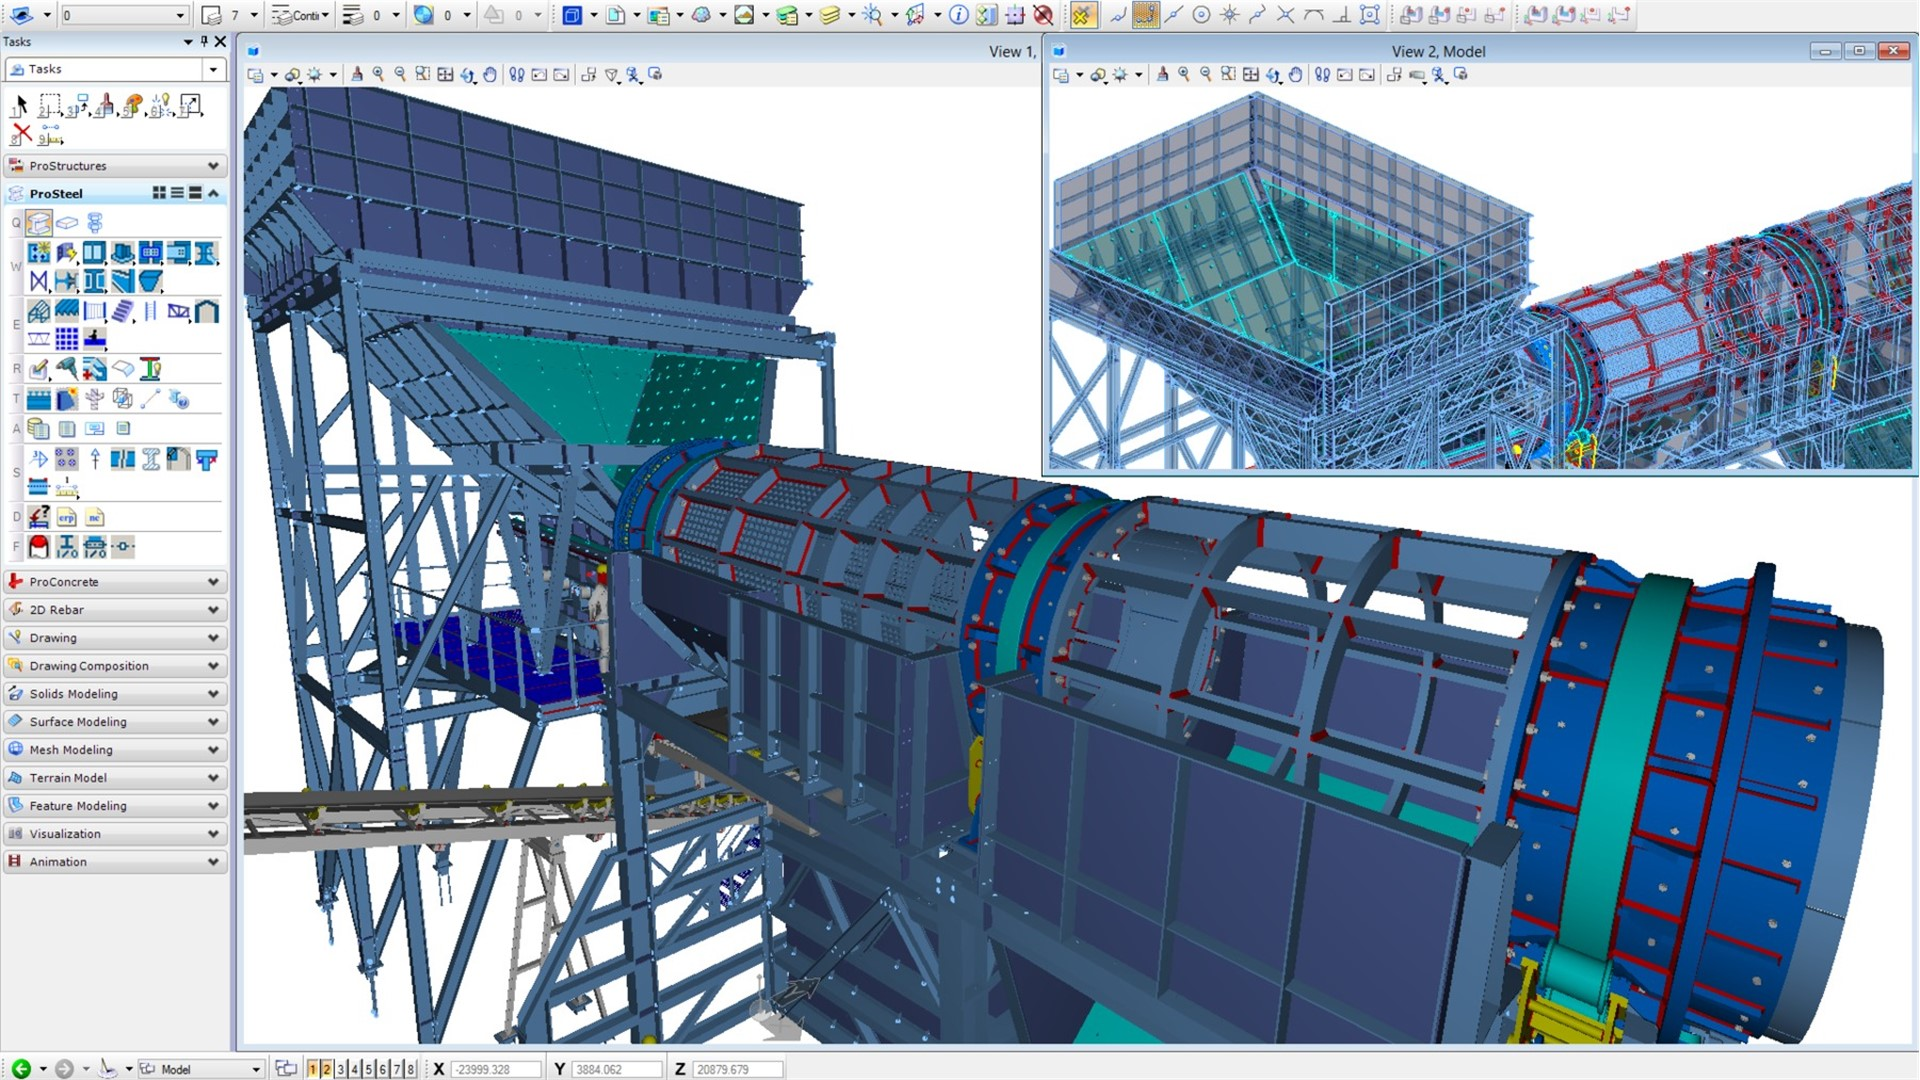 2d Drafting And Detailing : Steel detailing design and fabrication software u2013 prosteel